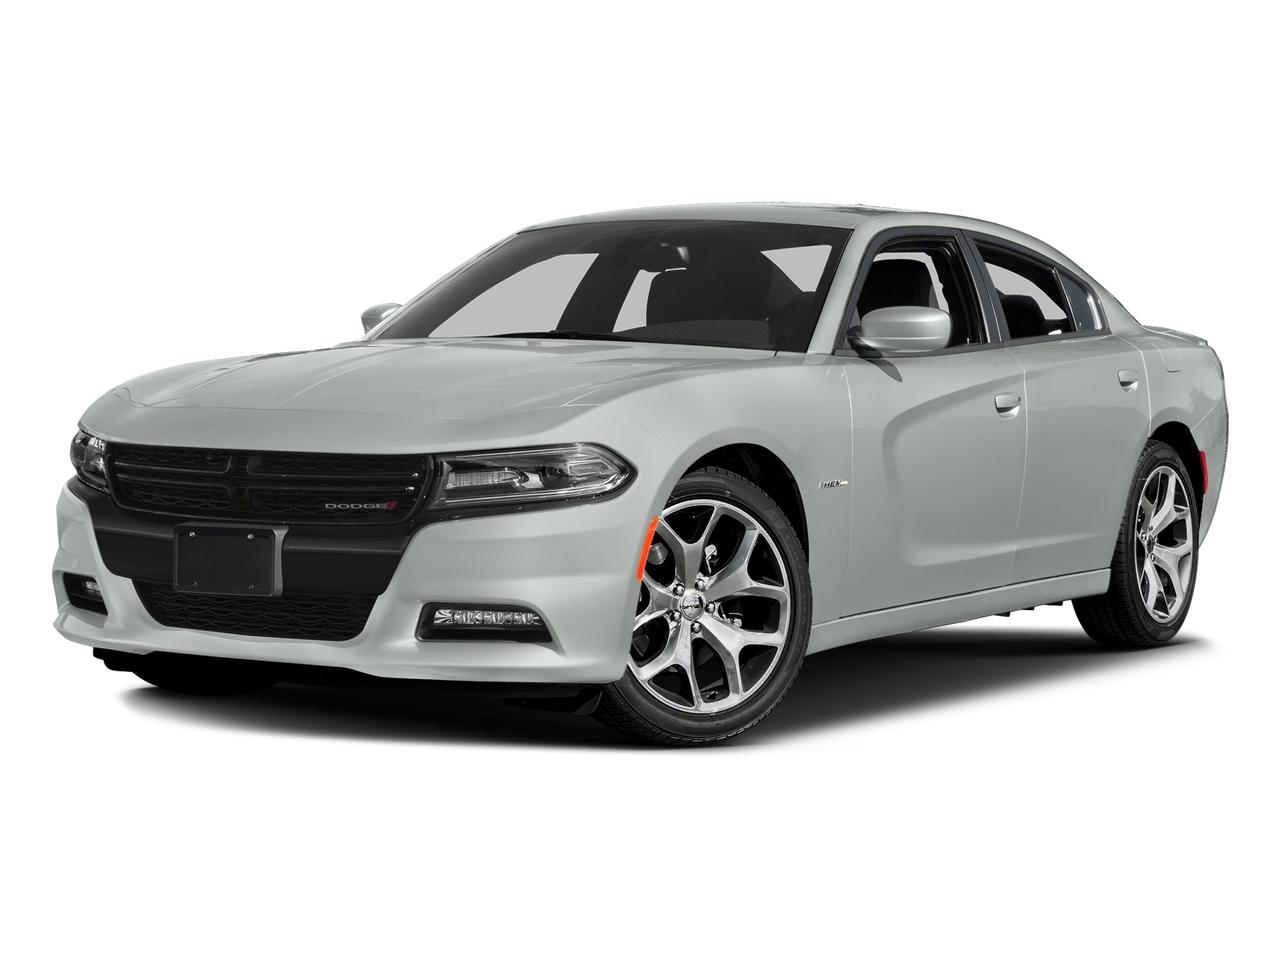 2016 Dodge Charger Vehicle Photo in BEND, OR 97701-5133